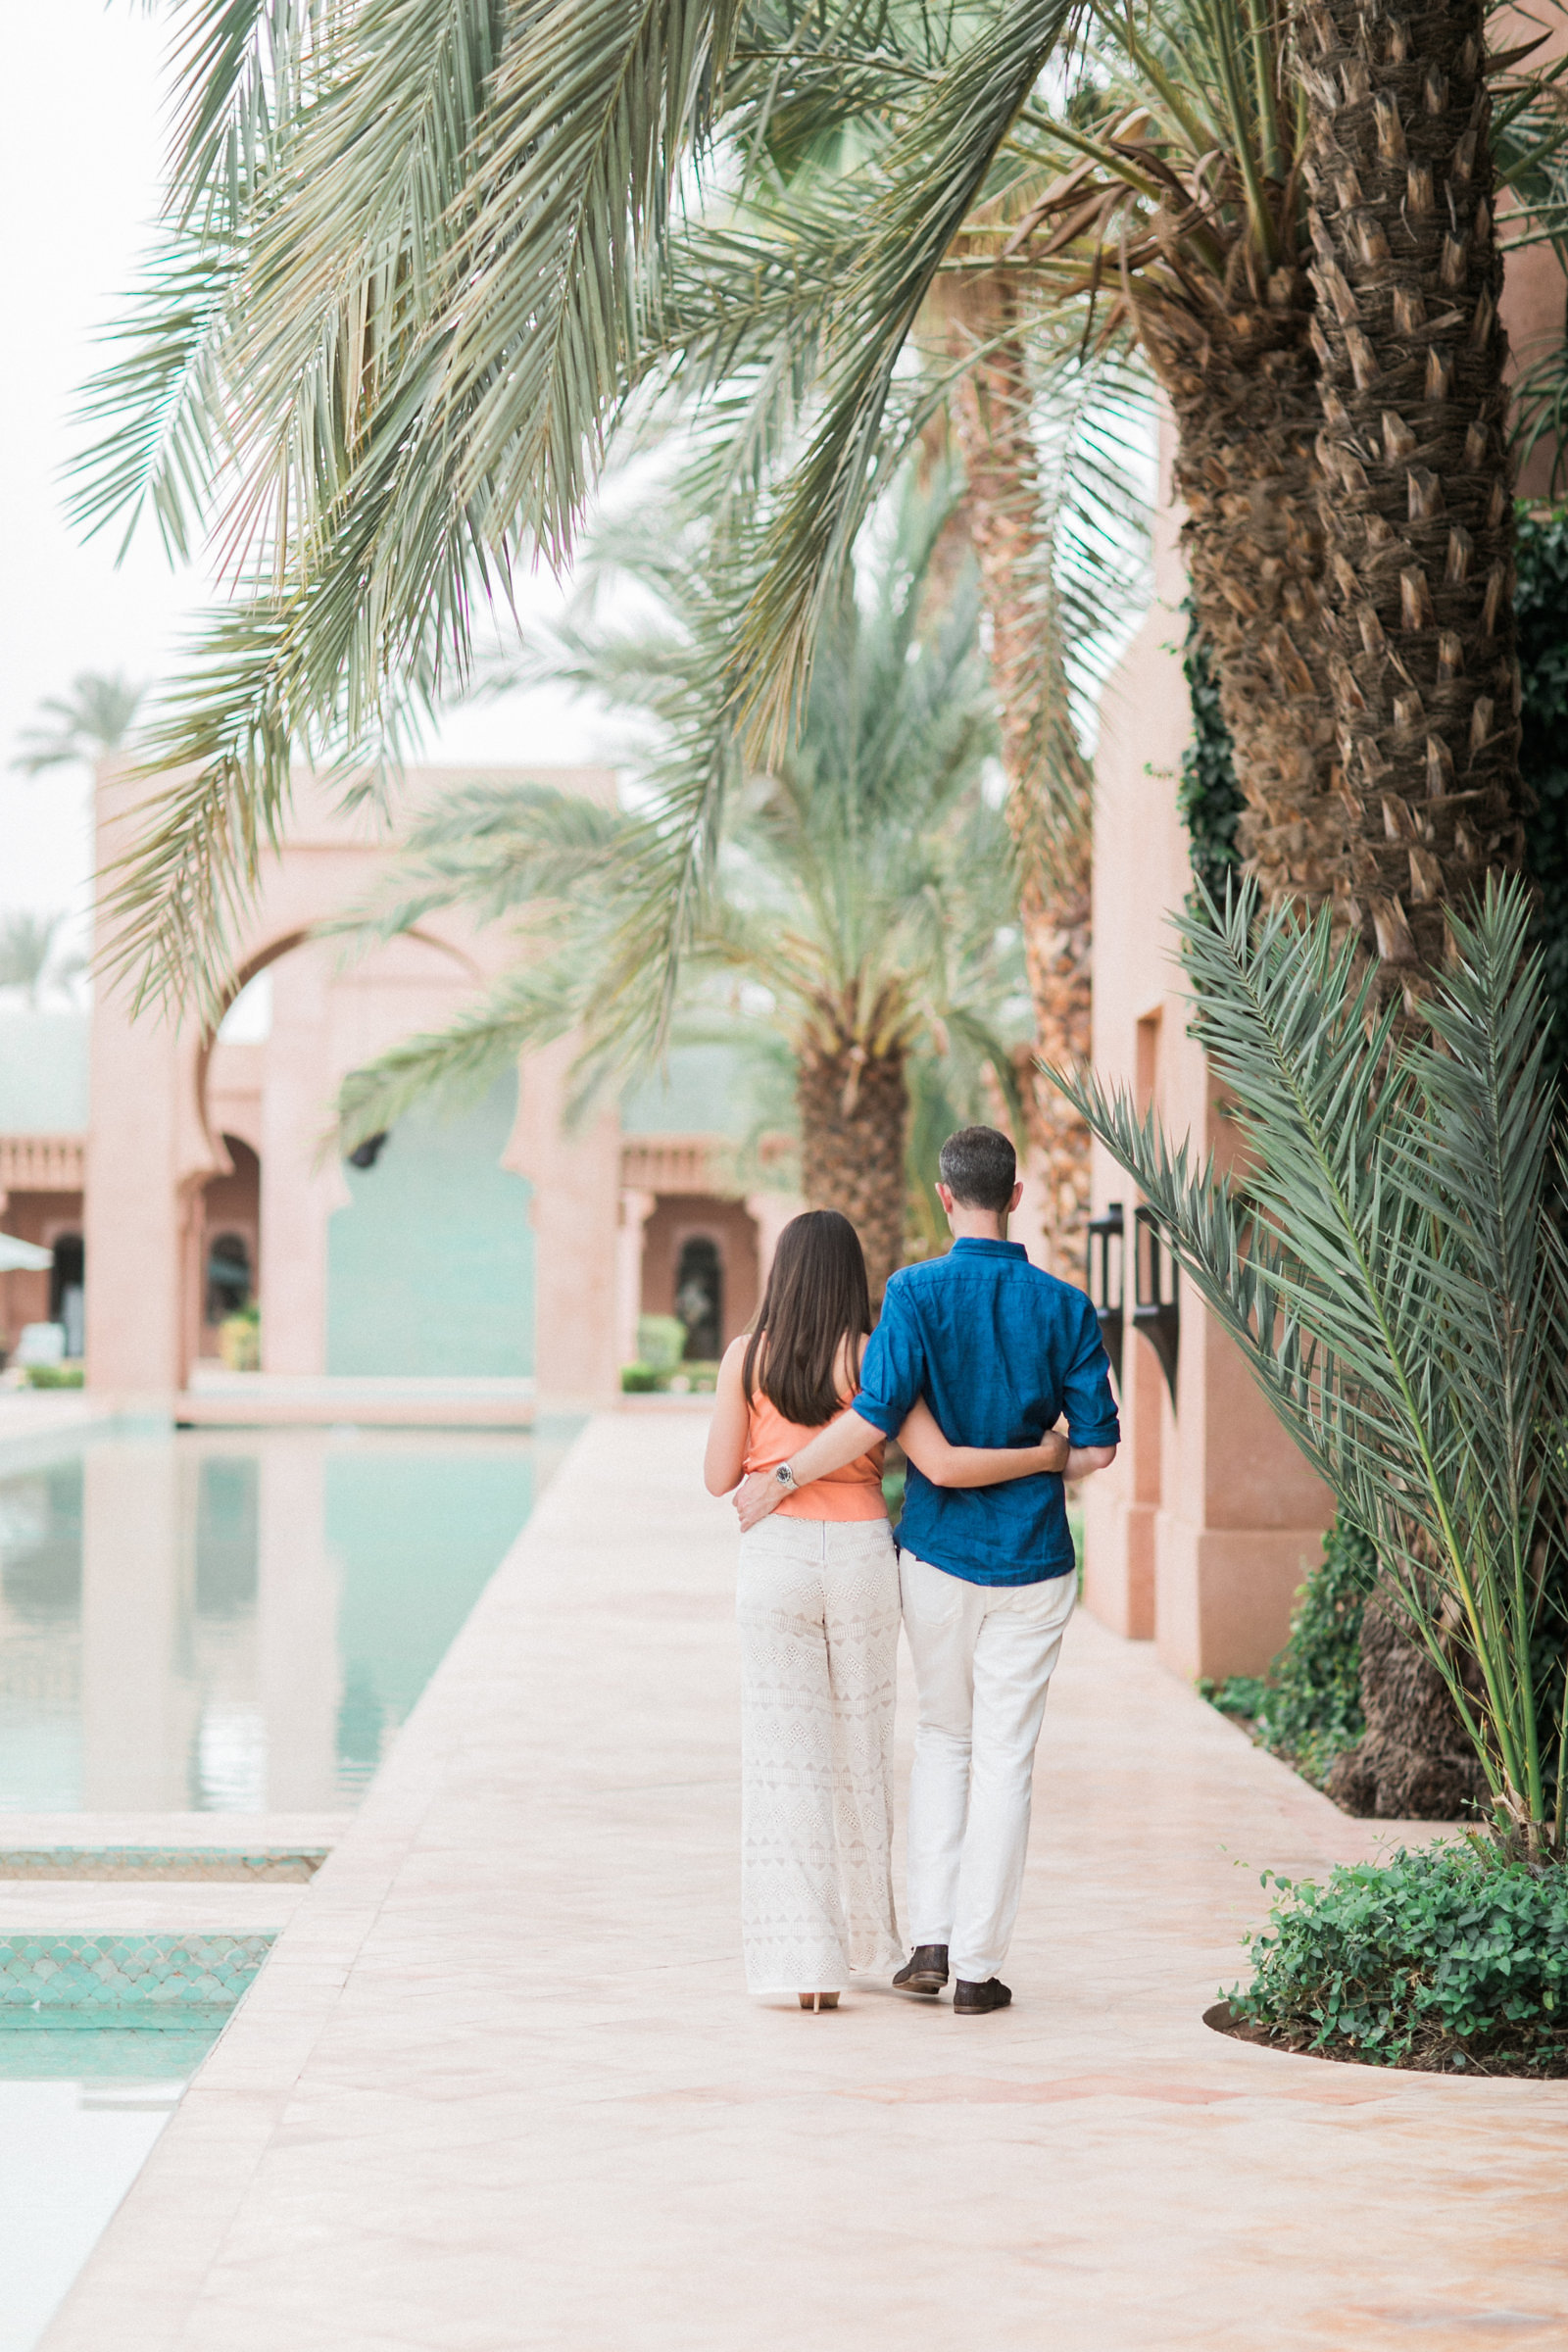 mariarao_engagement_marrakech-111web.JPG